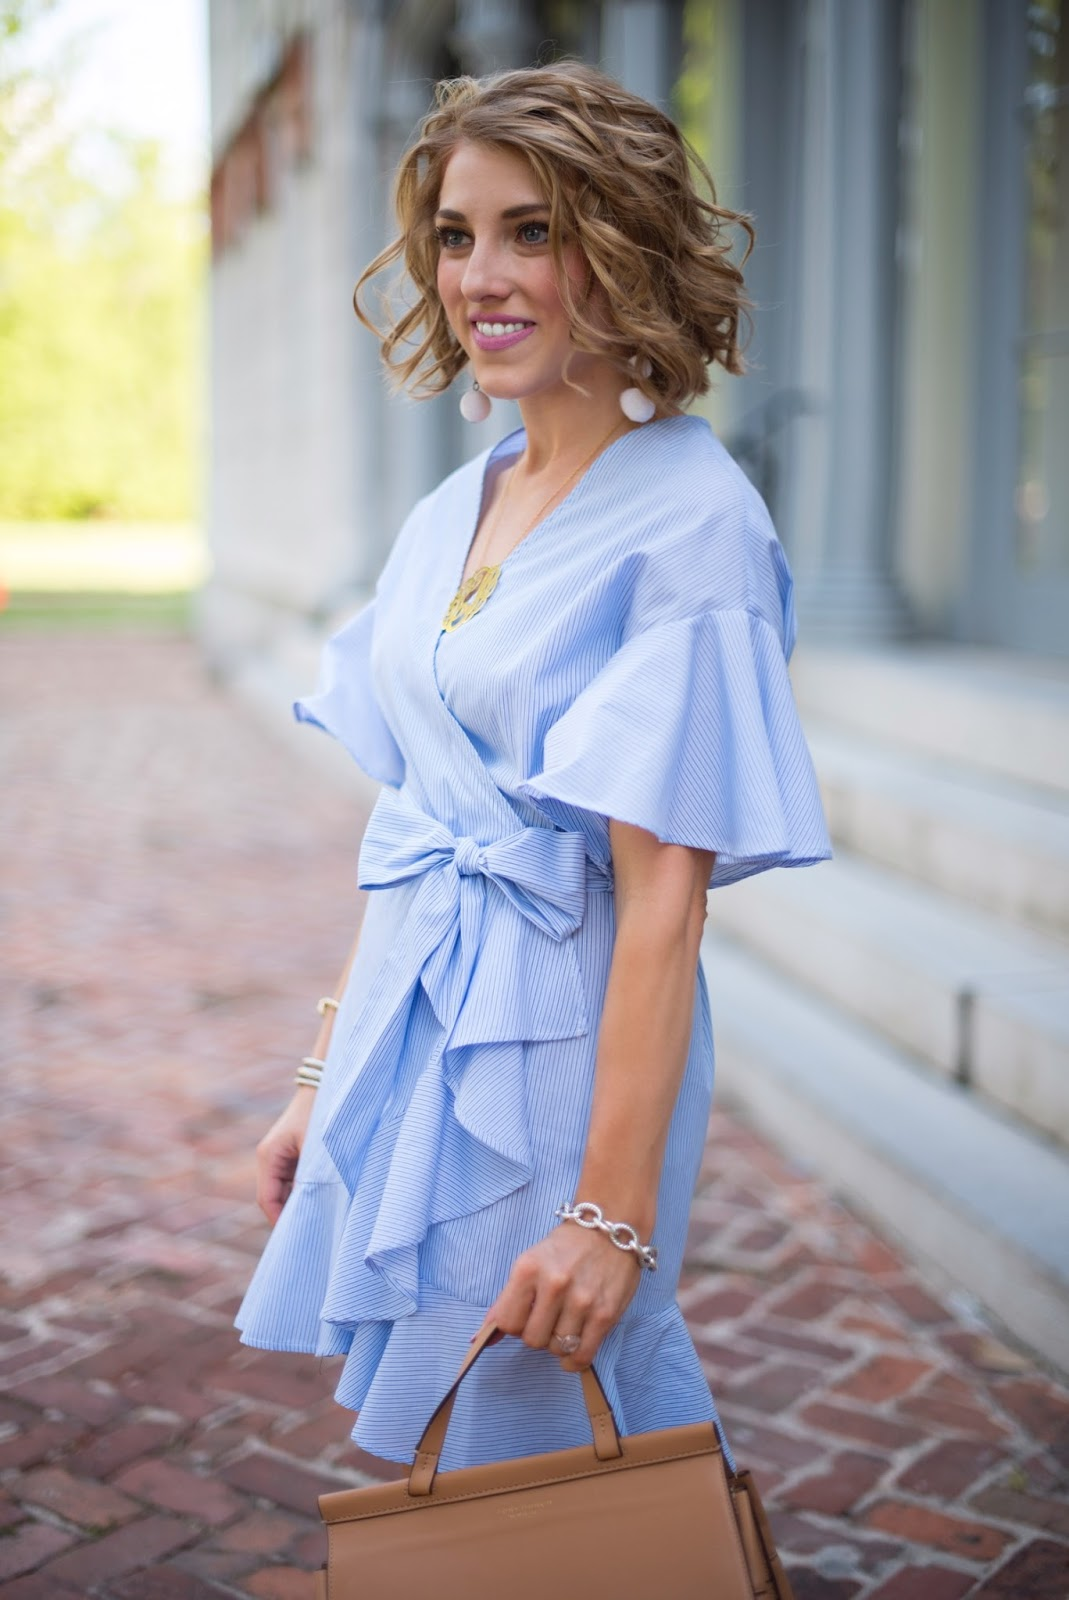 Wrap Dress - Click through to see more on Something Delightful Blog